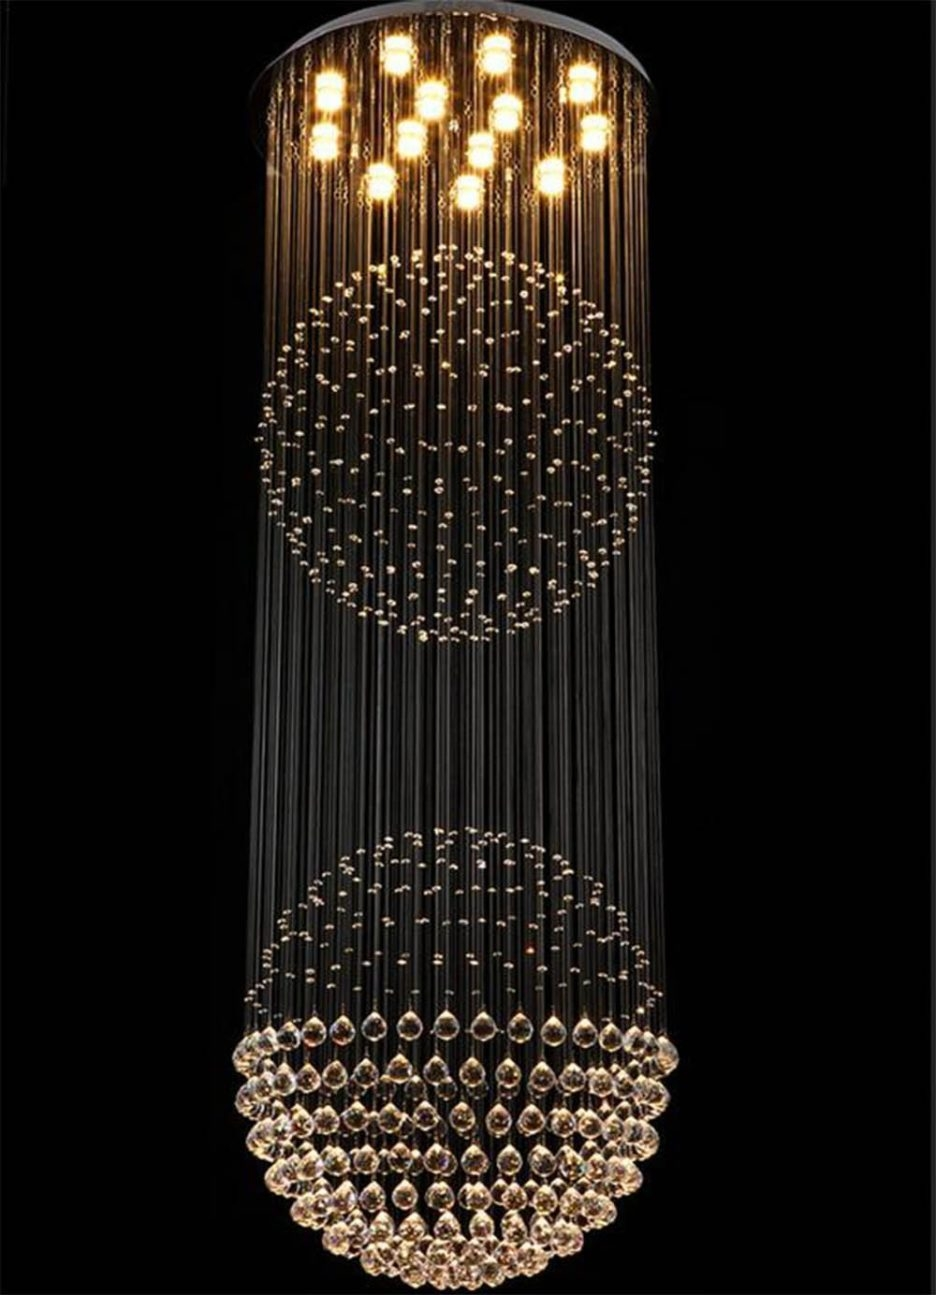 Luxurious Crystal Chandelier With Rain Drop And Two Large Globe Regarding Hallway Chandeliers (View 12 of 25)